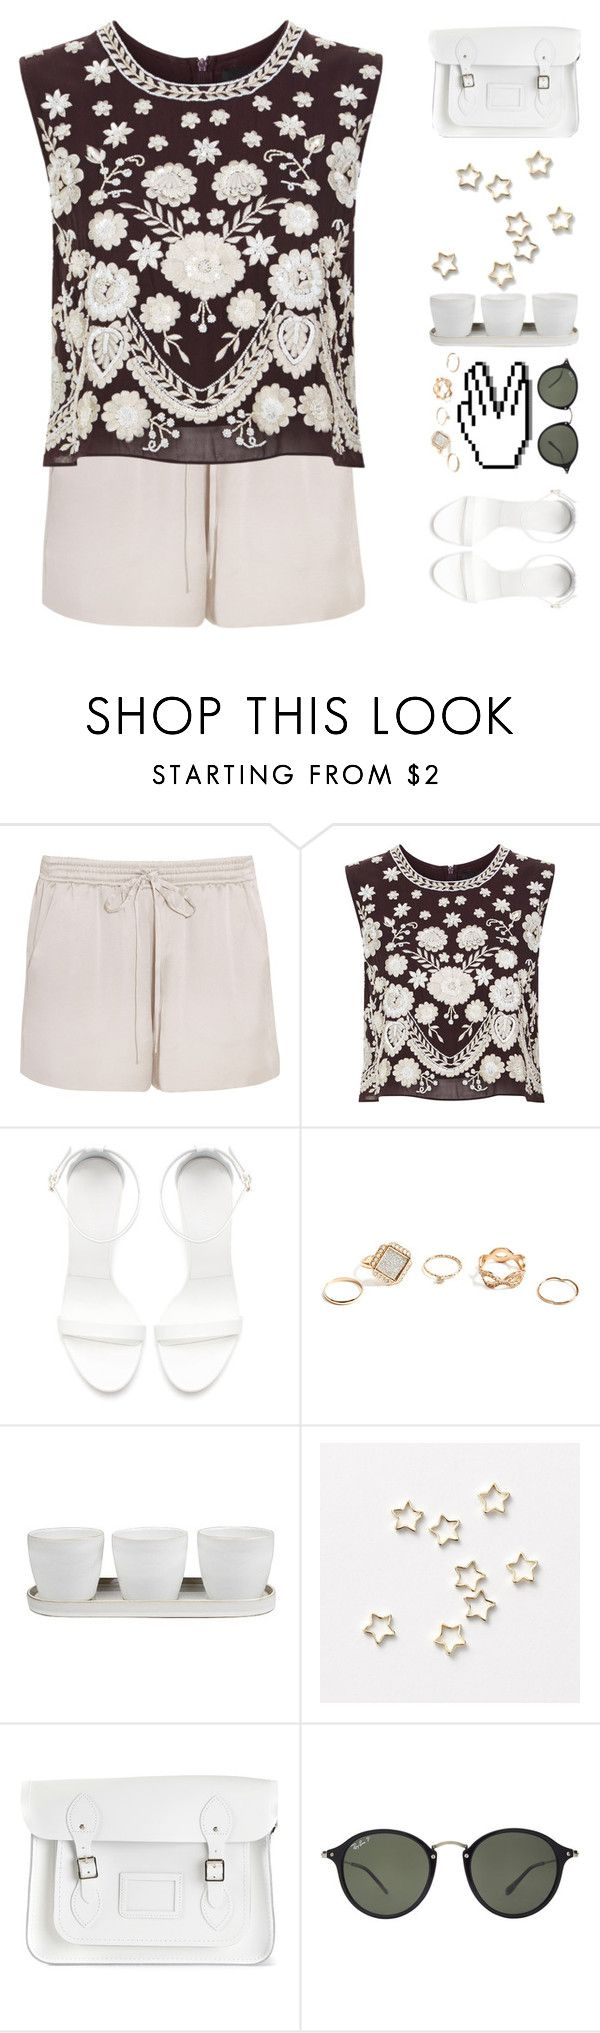 """""""/ I'm gonna stand by you... even if we can't find heaven \"""" by mel2016 ❤ liked on Polyvore featuring Chloé, Needle & Thread, Zara, GUESS, Threshold, The Cambridge Satchel Company and Ray-Ban"""